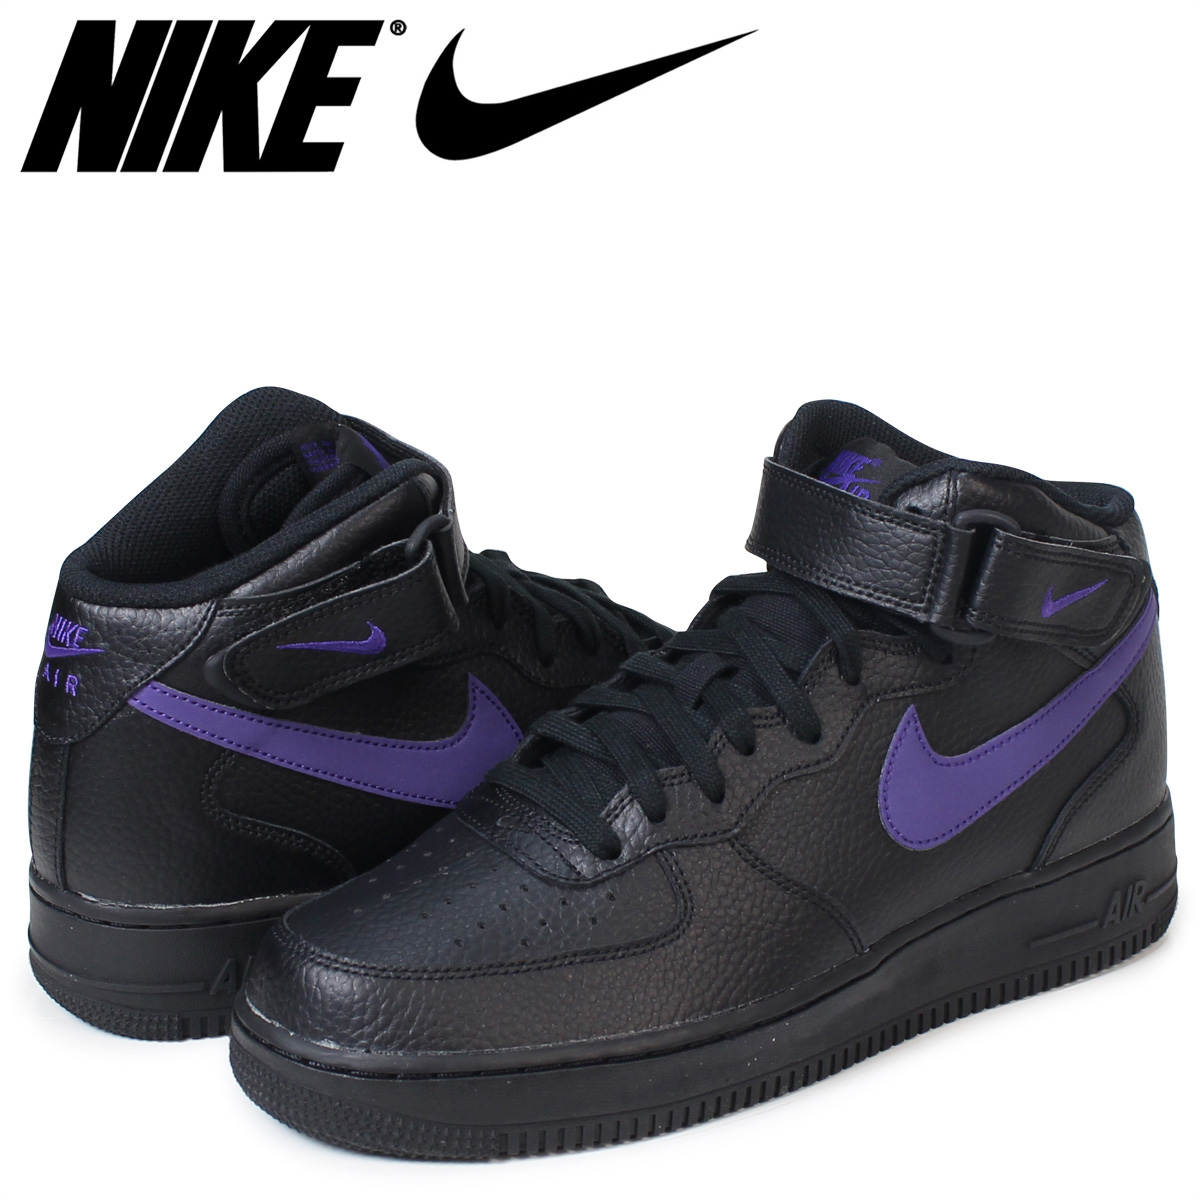 Nike NIKE air force 1 MID sneakers AIR FORCE 1 07 315,123-044 men's shoes black [load planned Shinnyu load in reservation product 9/16 containing]